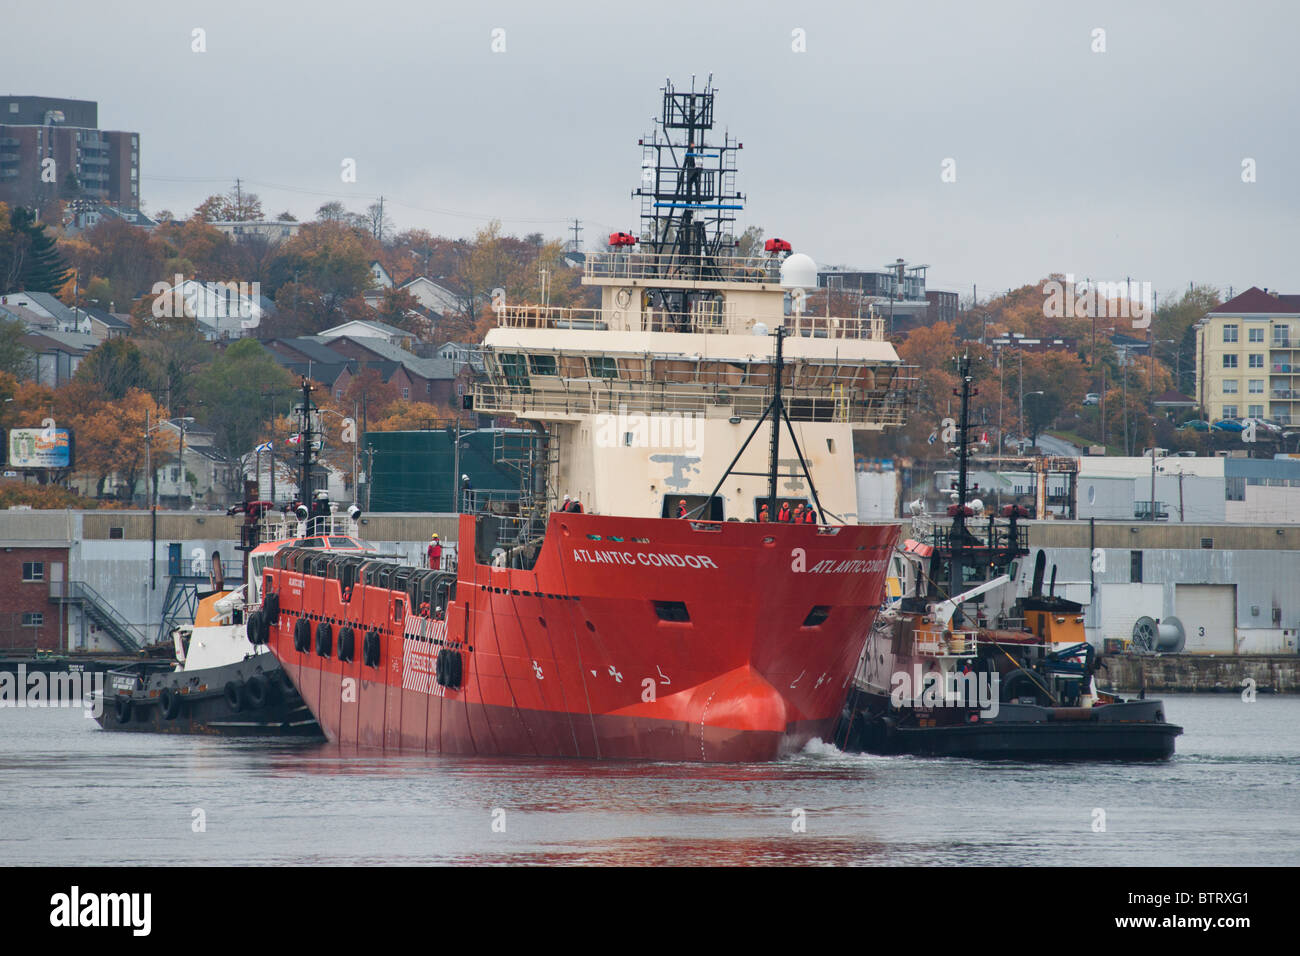 Tugs help the rig supplier Atlantic Condor to her fitting out berth at the Halifax Shipyard in Nova Scotia, Canada. - Stock Image